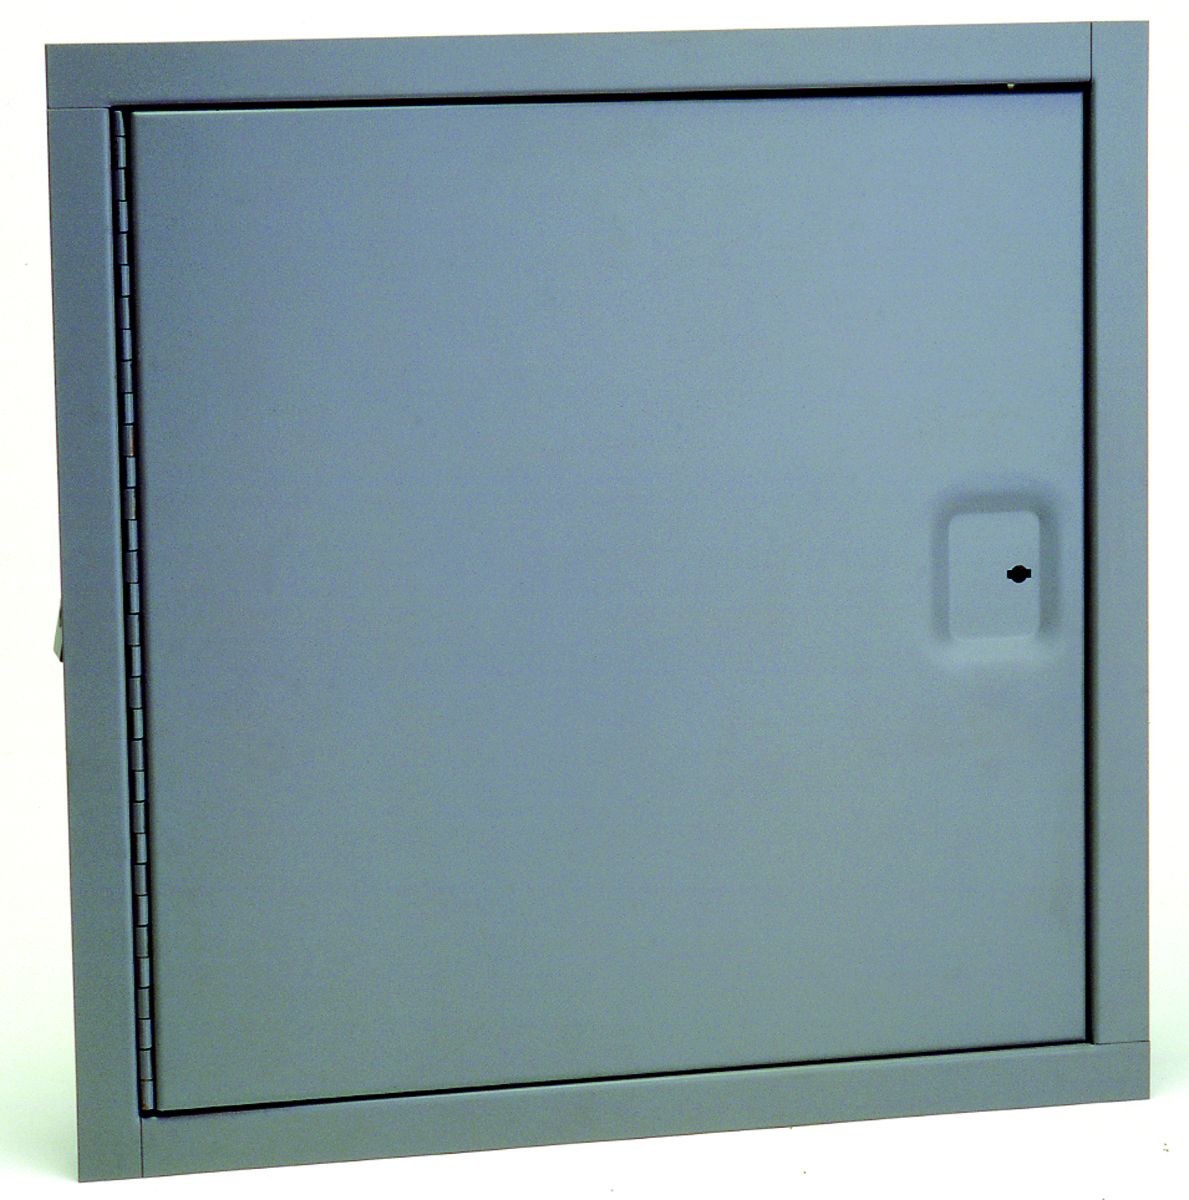 Fire Rated Access Doors : Access doors hardware fire rated